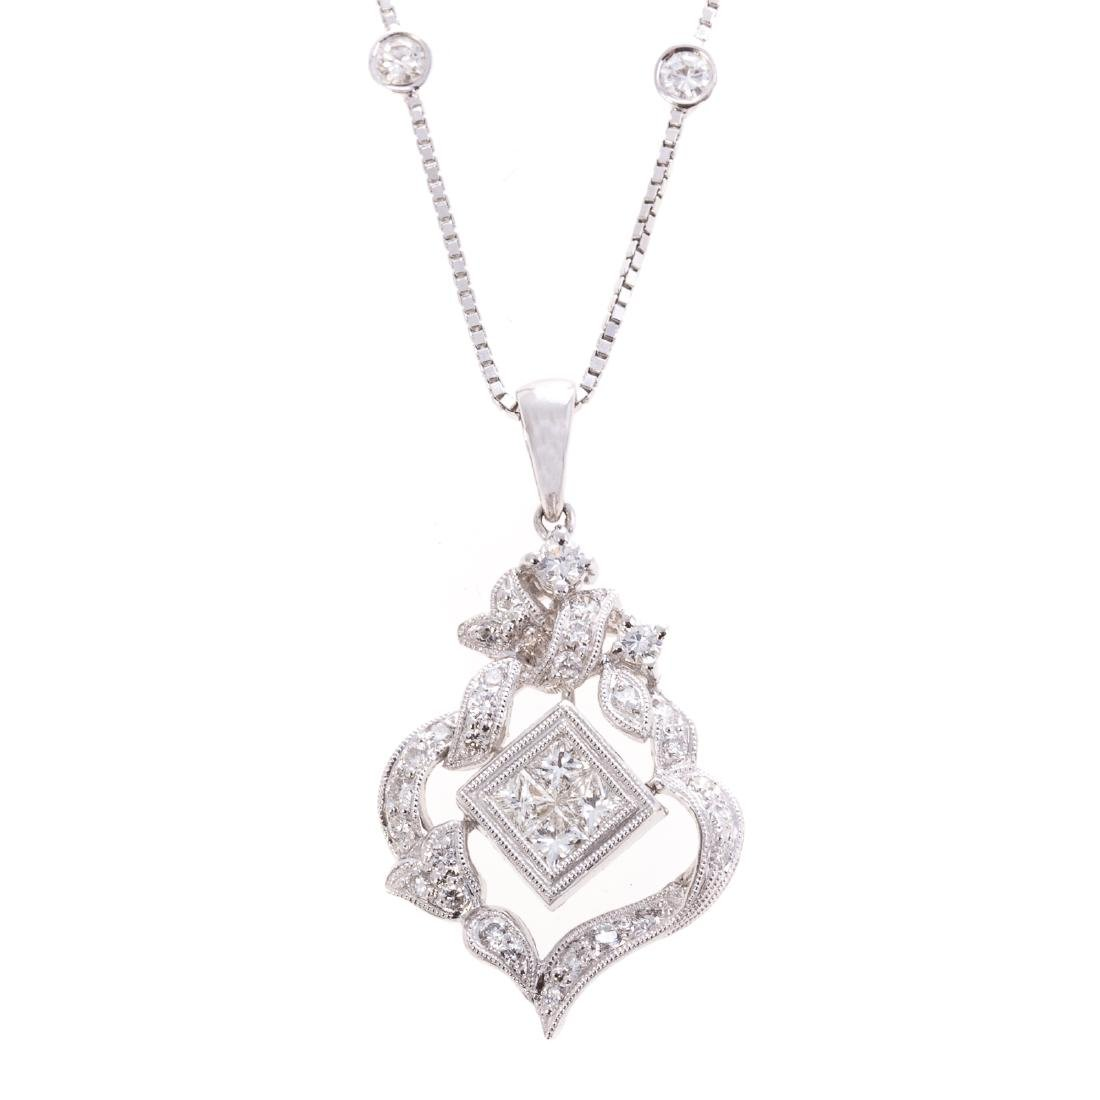 A Lady's Diamond Filigree Pendant in White Gold